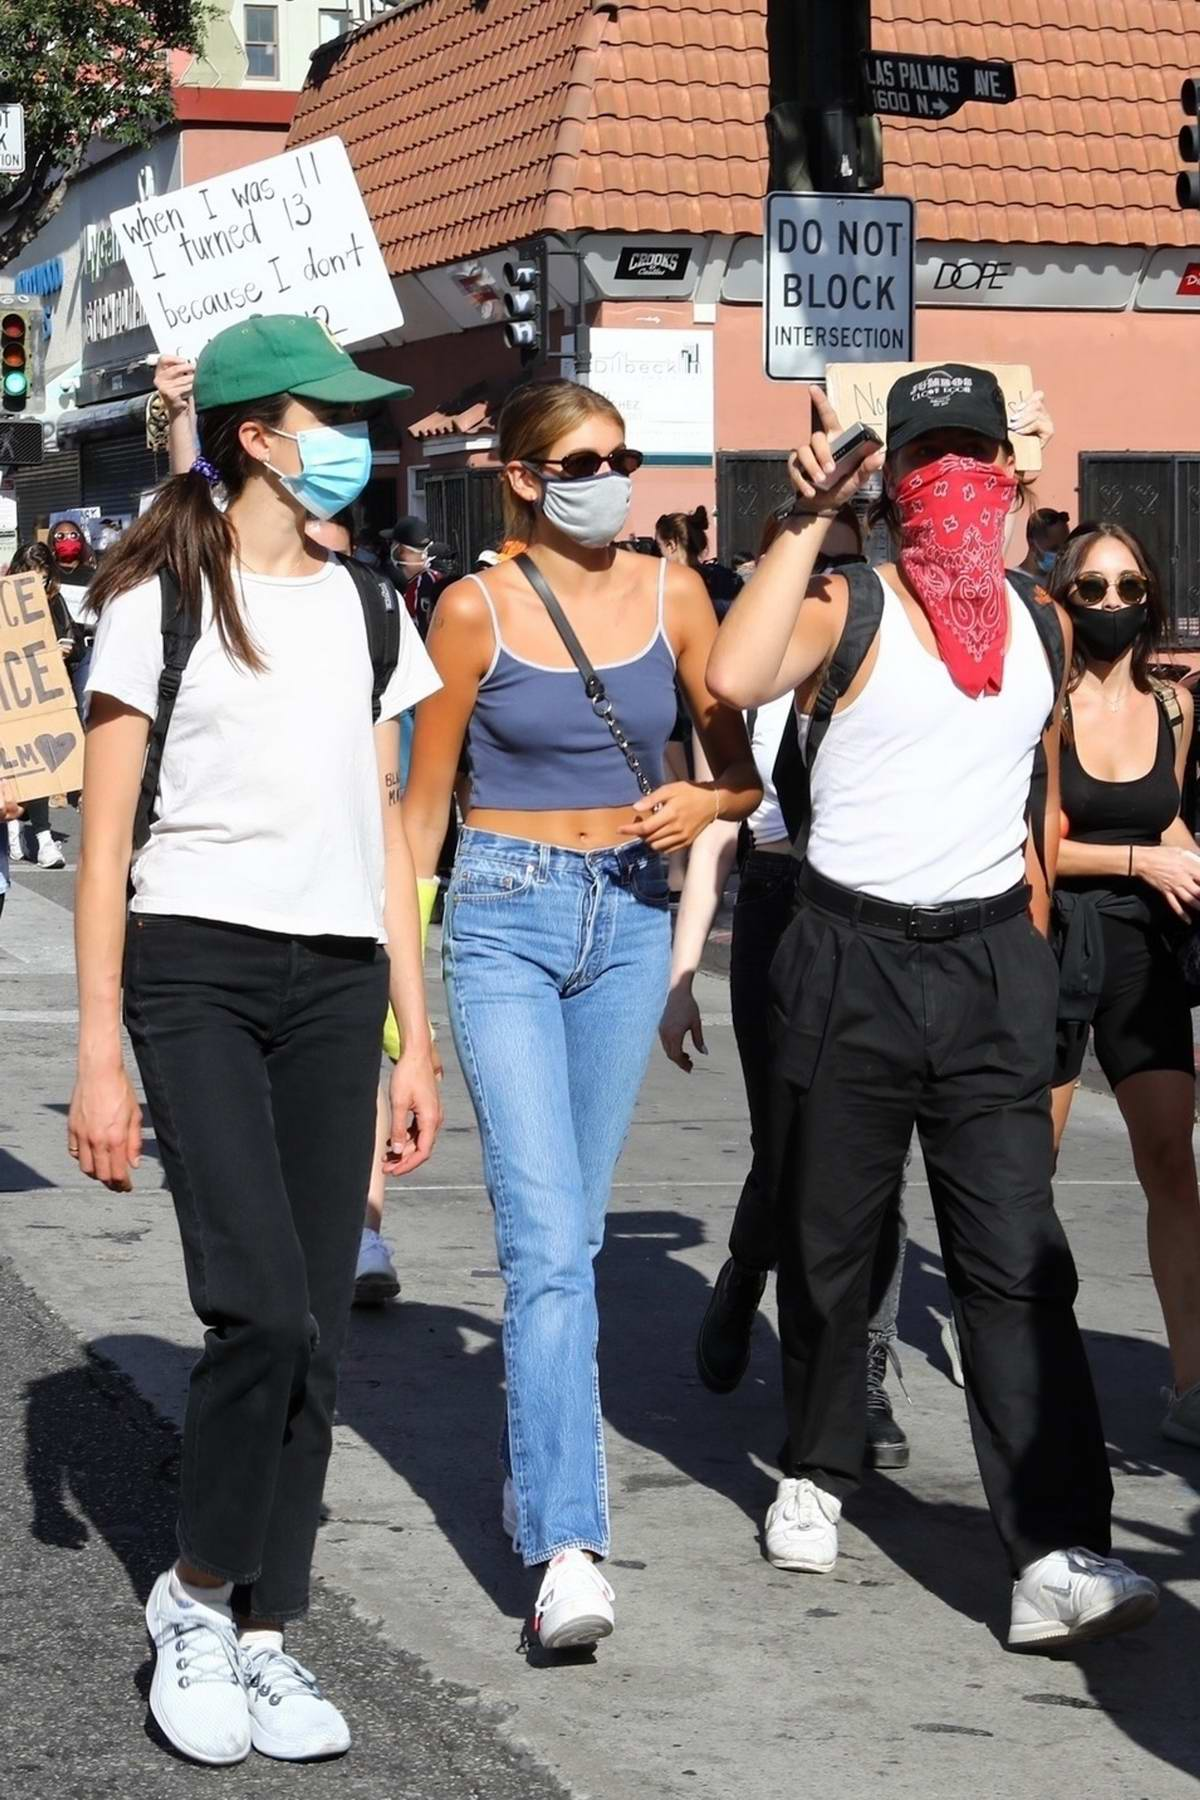 Kaia Gerber, Margaret Qualley, Eiza Gonzalez, and Madelaine Petsch march at the 'Black Lives Matter' protest in Los Angeles